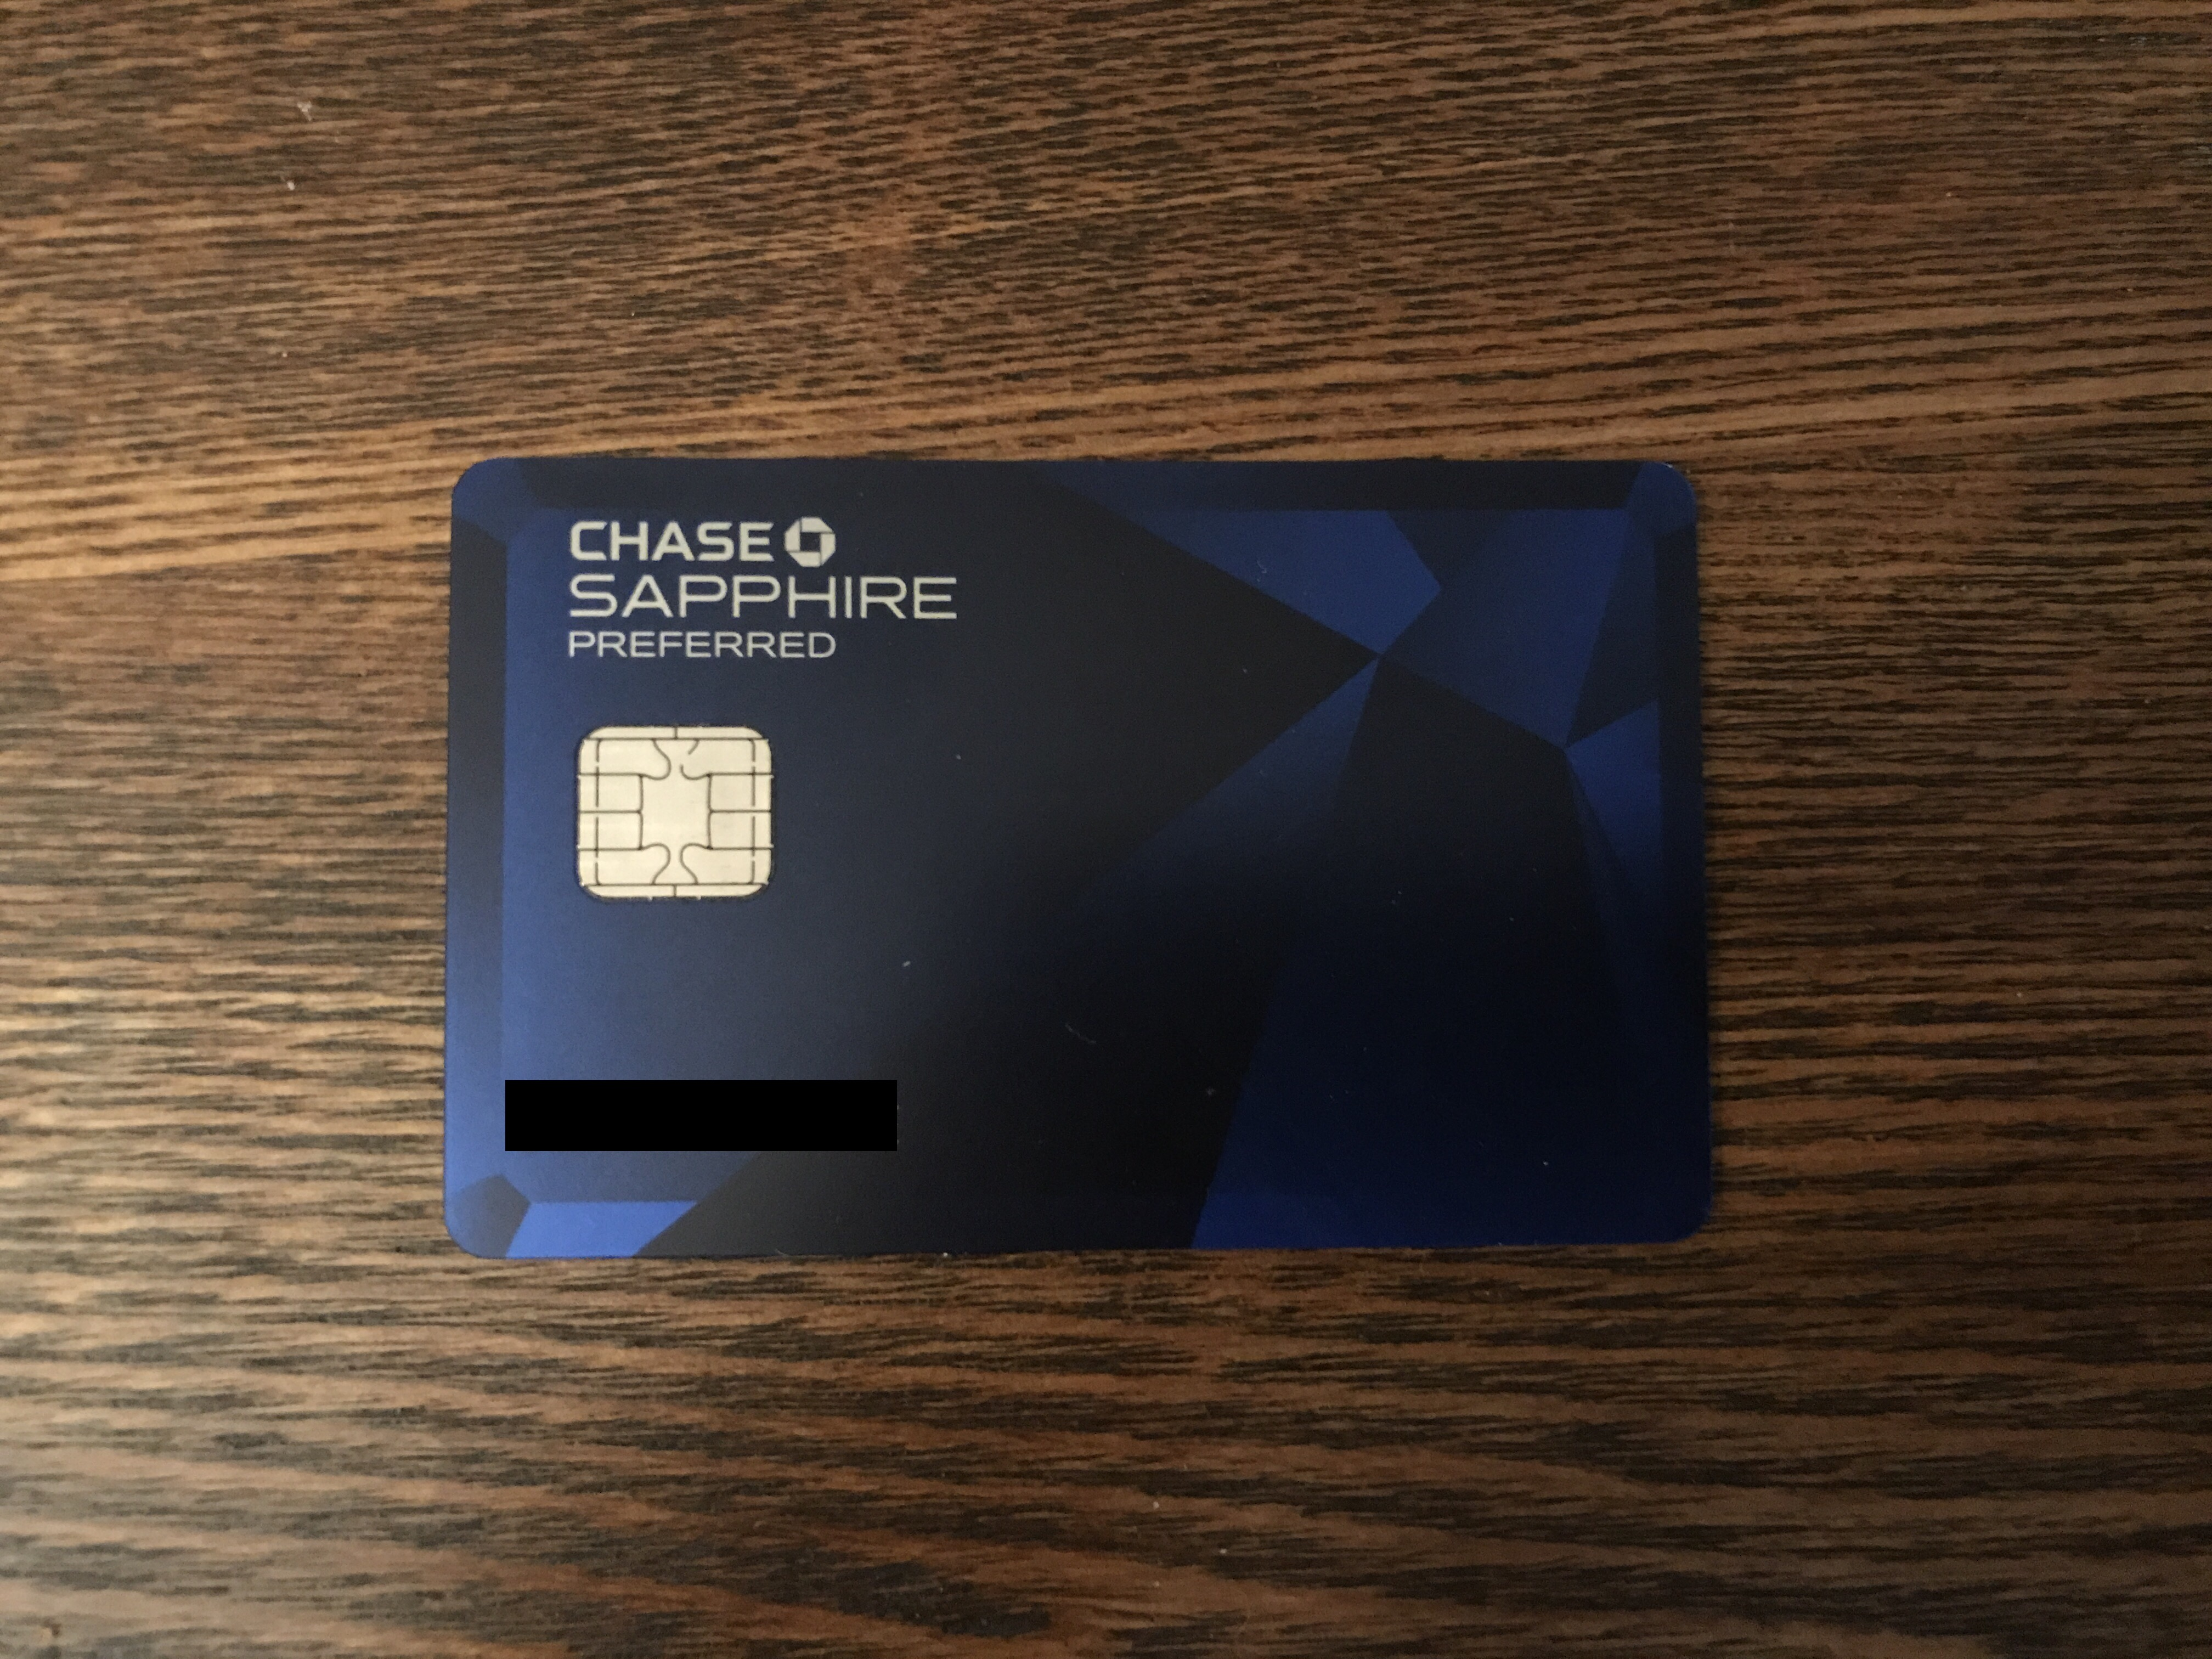 My Chase Sapphire Preferred Downgrade Call Moore With Miles